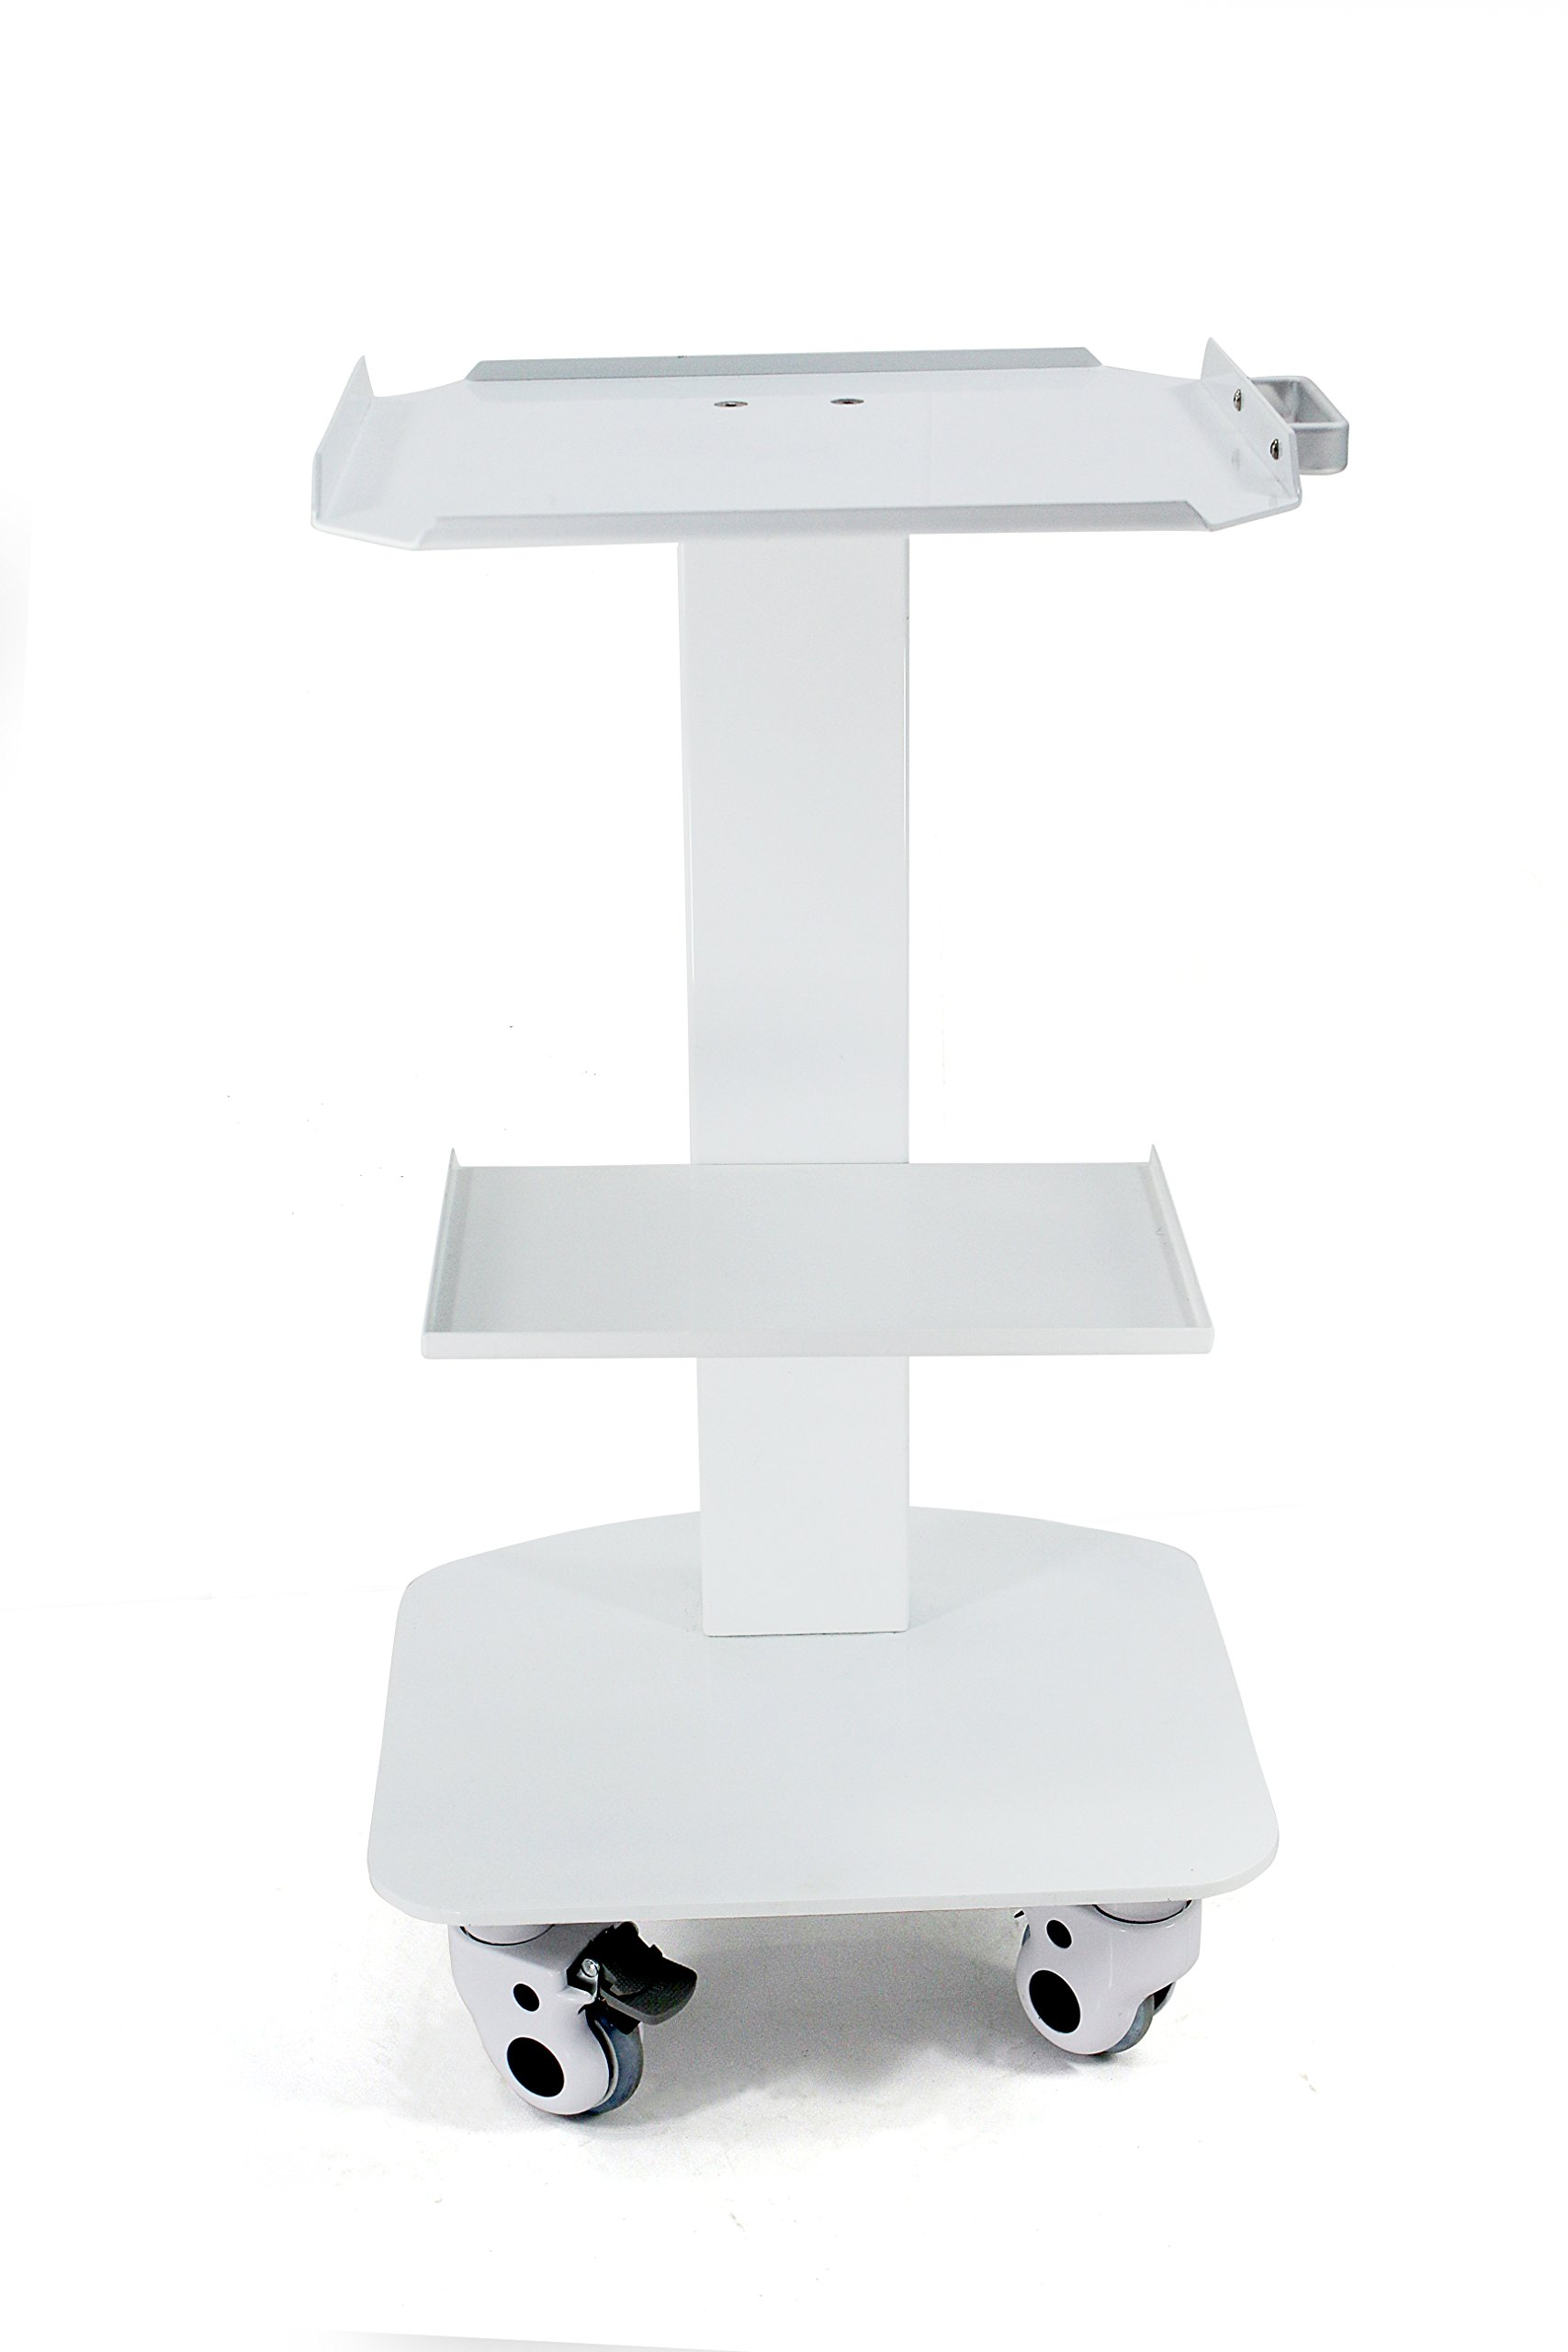 Zeta Dental Marshall 3-Shelf Metal Rolling Utility Cart White Color by Zeta